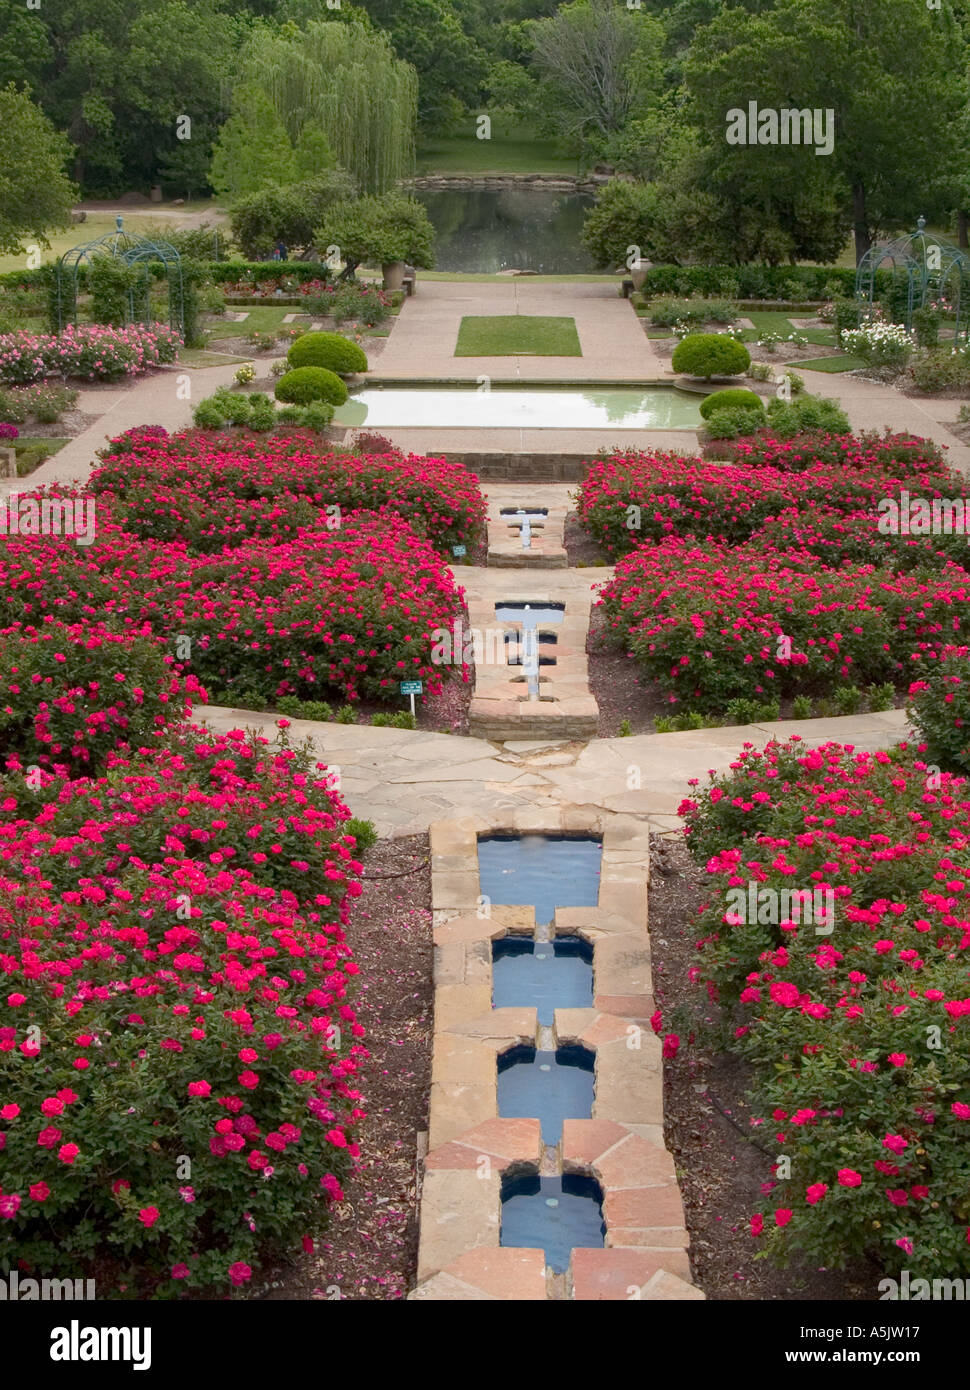 Center View Of Rose Garden Fountain And Pond Fort Worth Texas Stock Photo Royalty Free Image